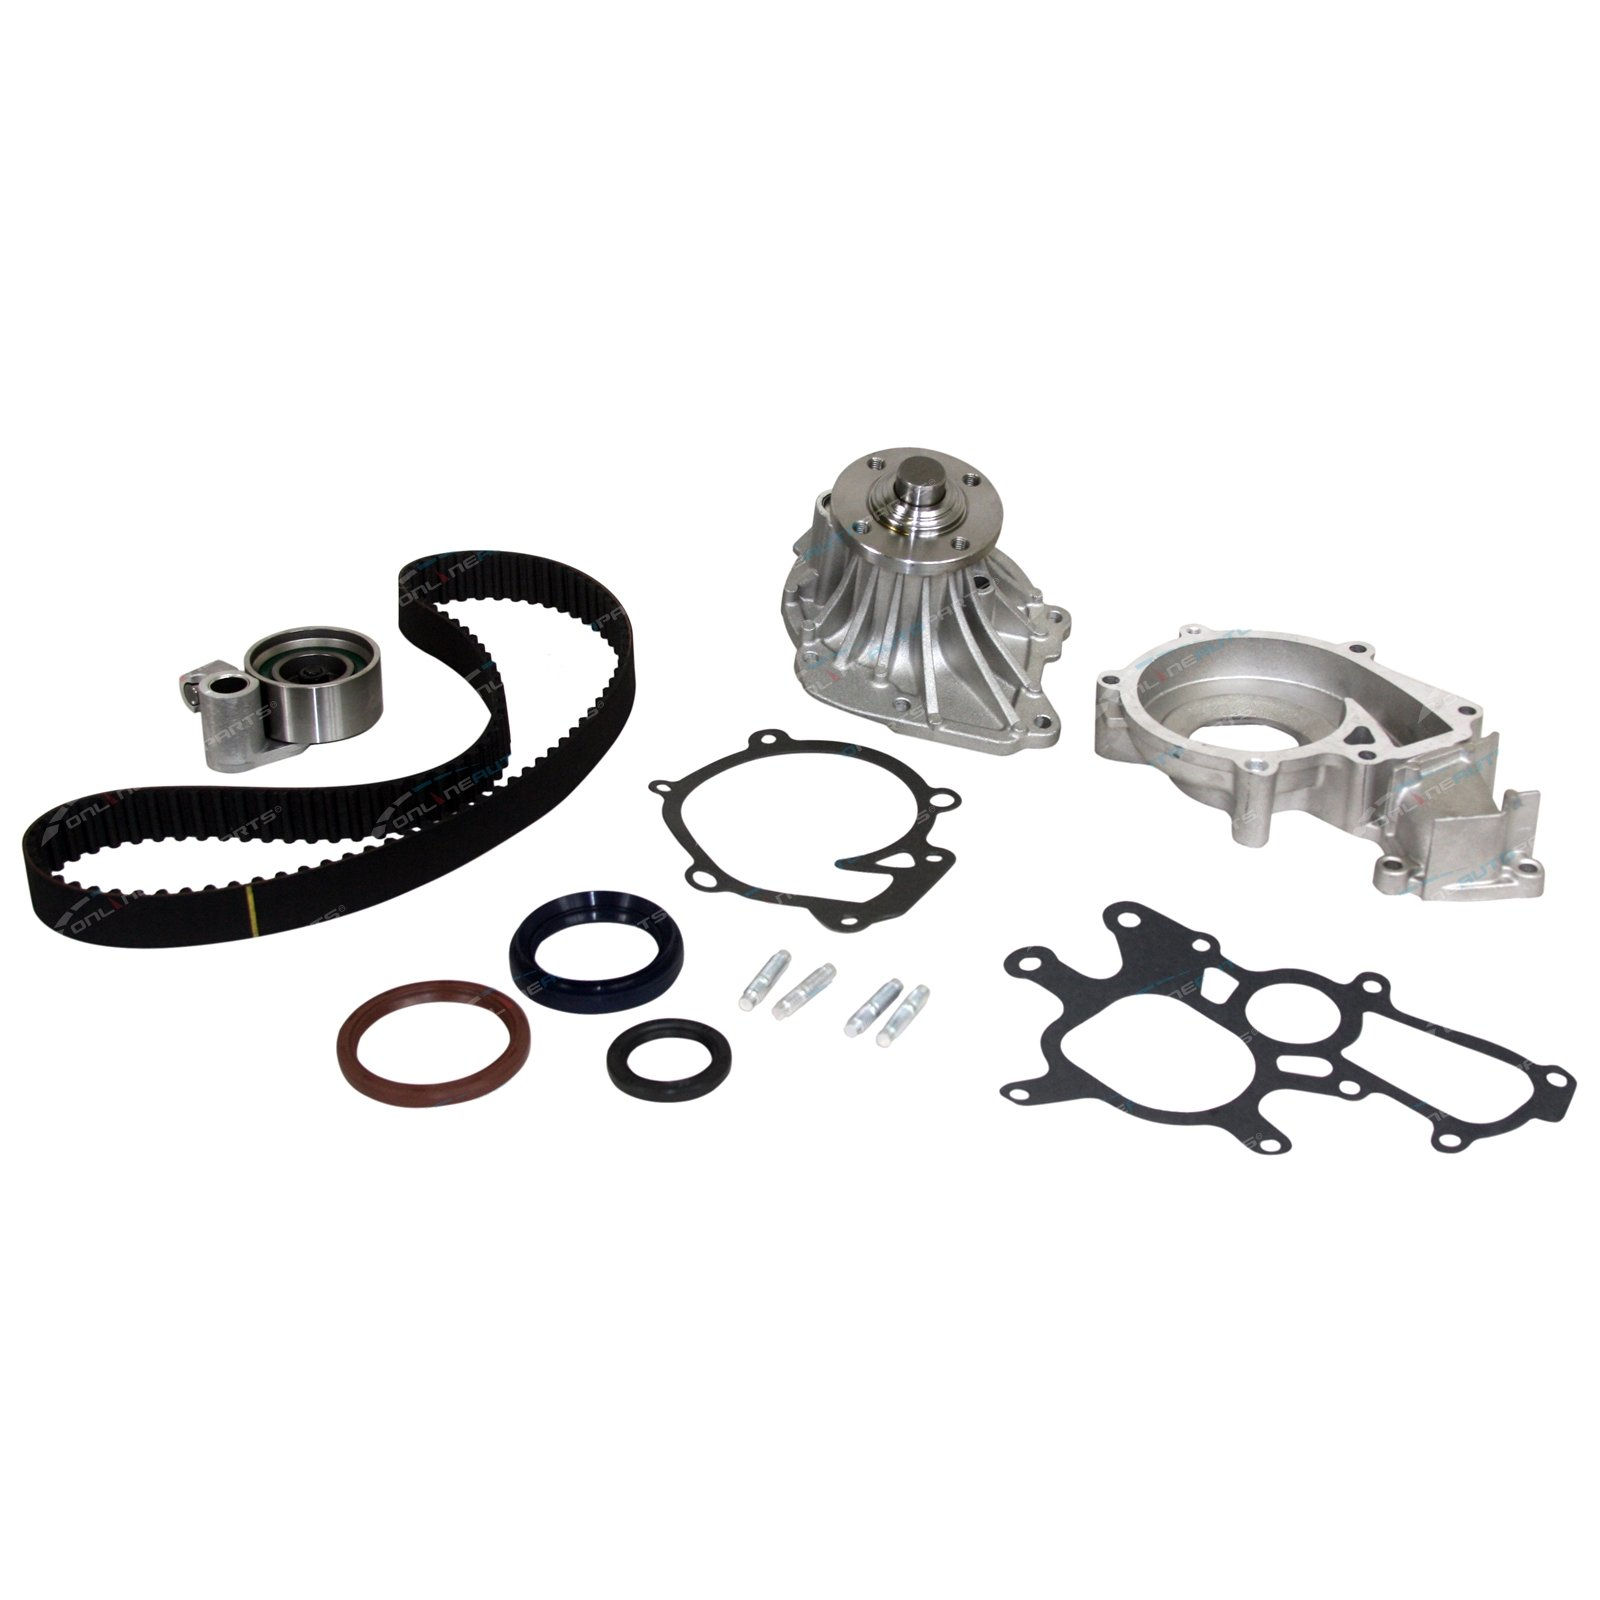 Timing Belt Tensioner Kit Gates Suits Toyota Hilux Surf Kzn130r Pulley Calculator